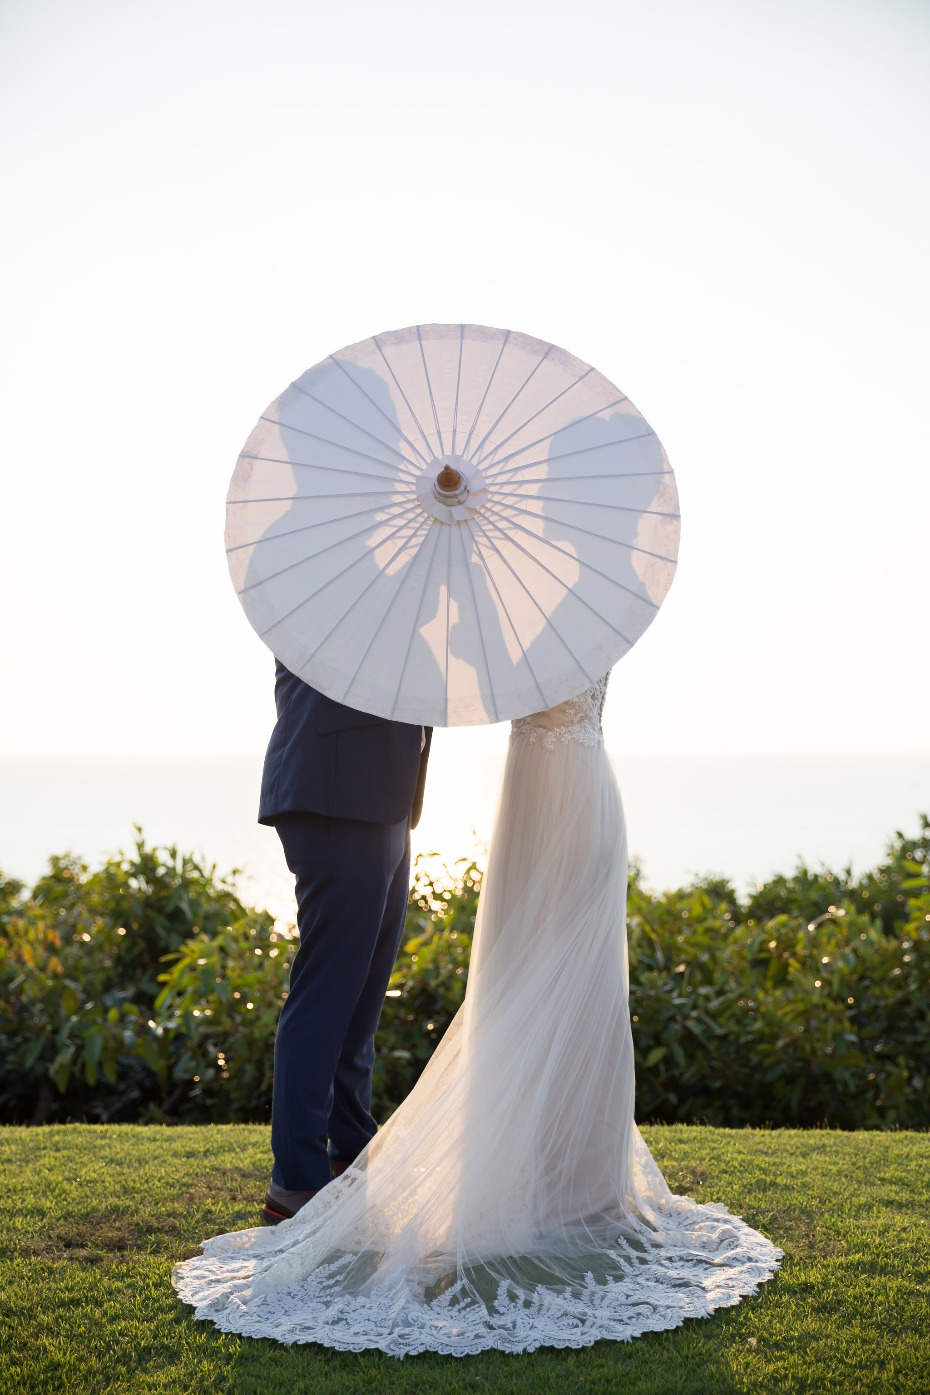 Cute parasol portrait for the bride and groom